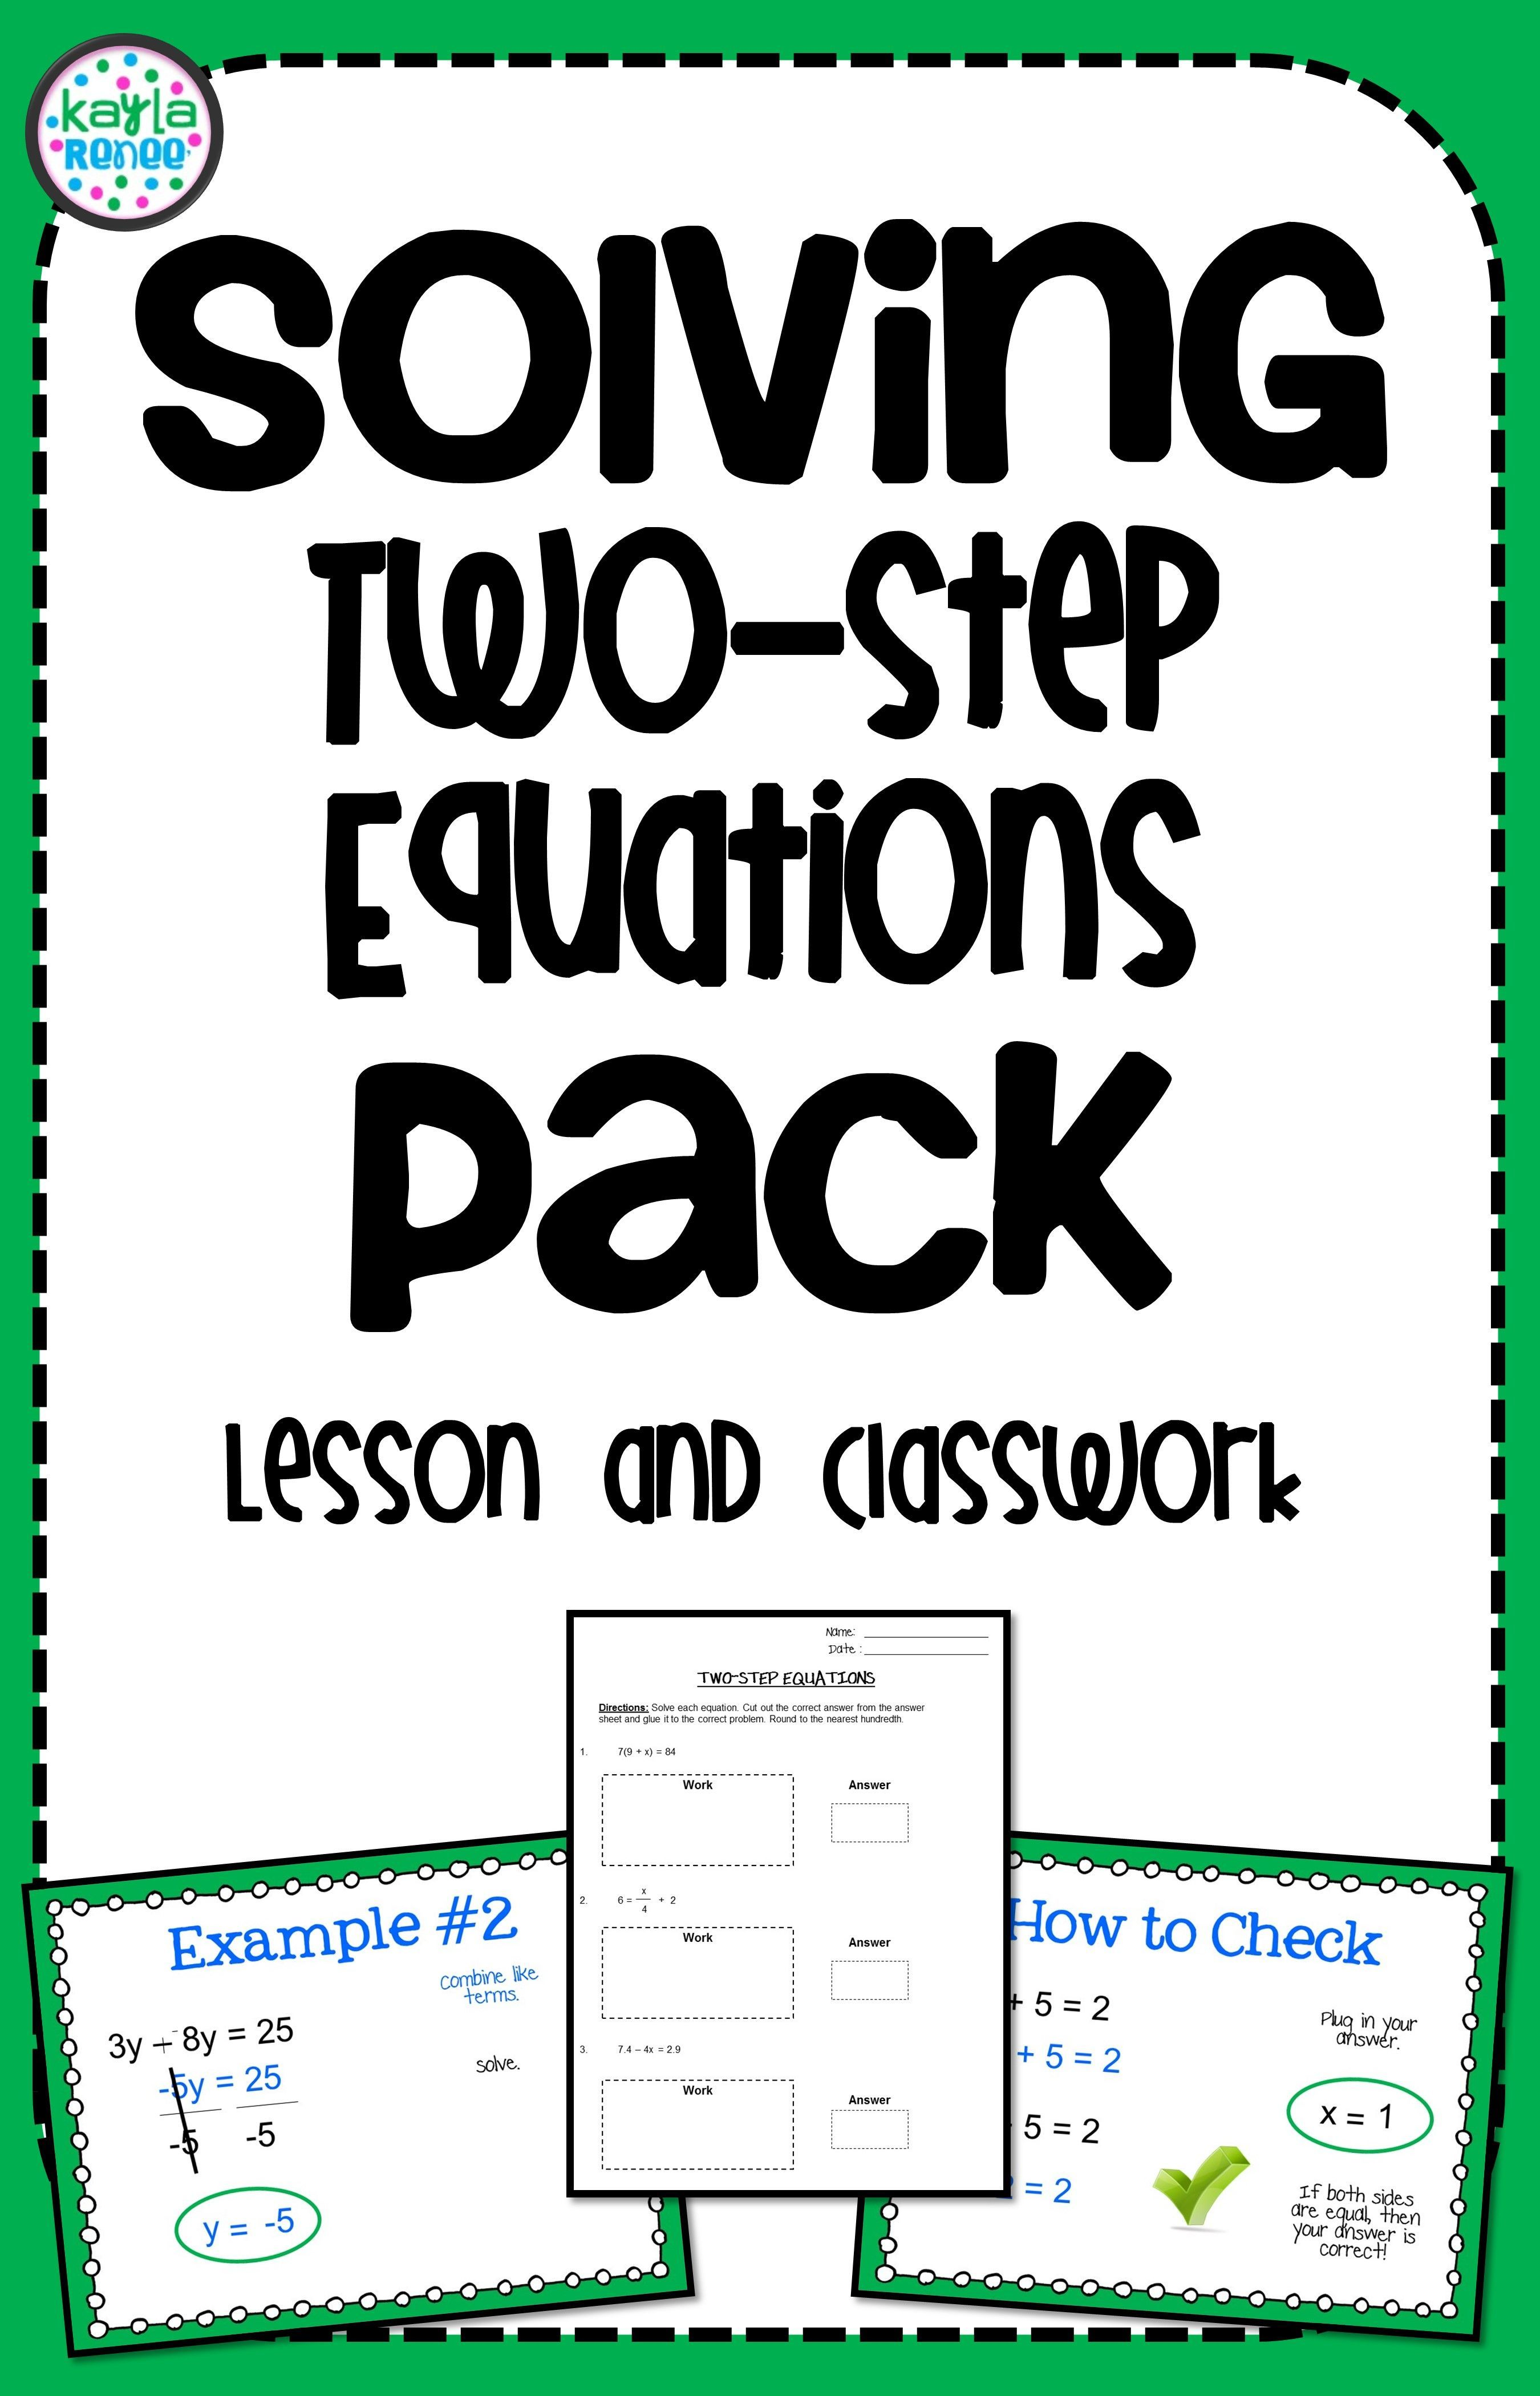 Teach Two Step Equations With This Lesson Pack The Lesson Includes A 12 Slide Powerpoint Teaching Expressions Middle School Math Resources Two Step Equations